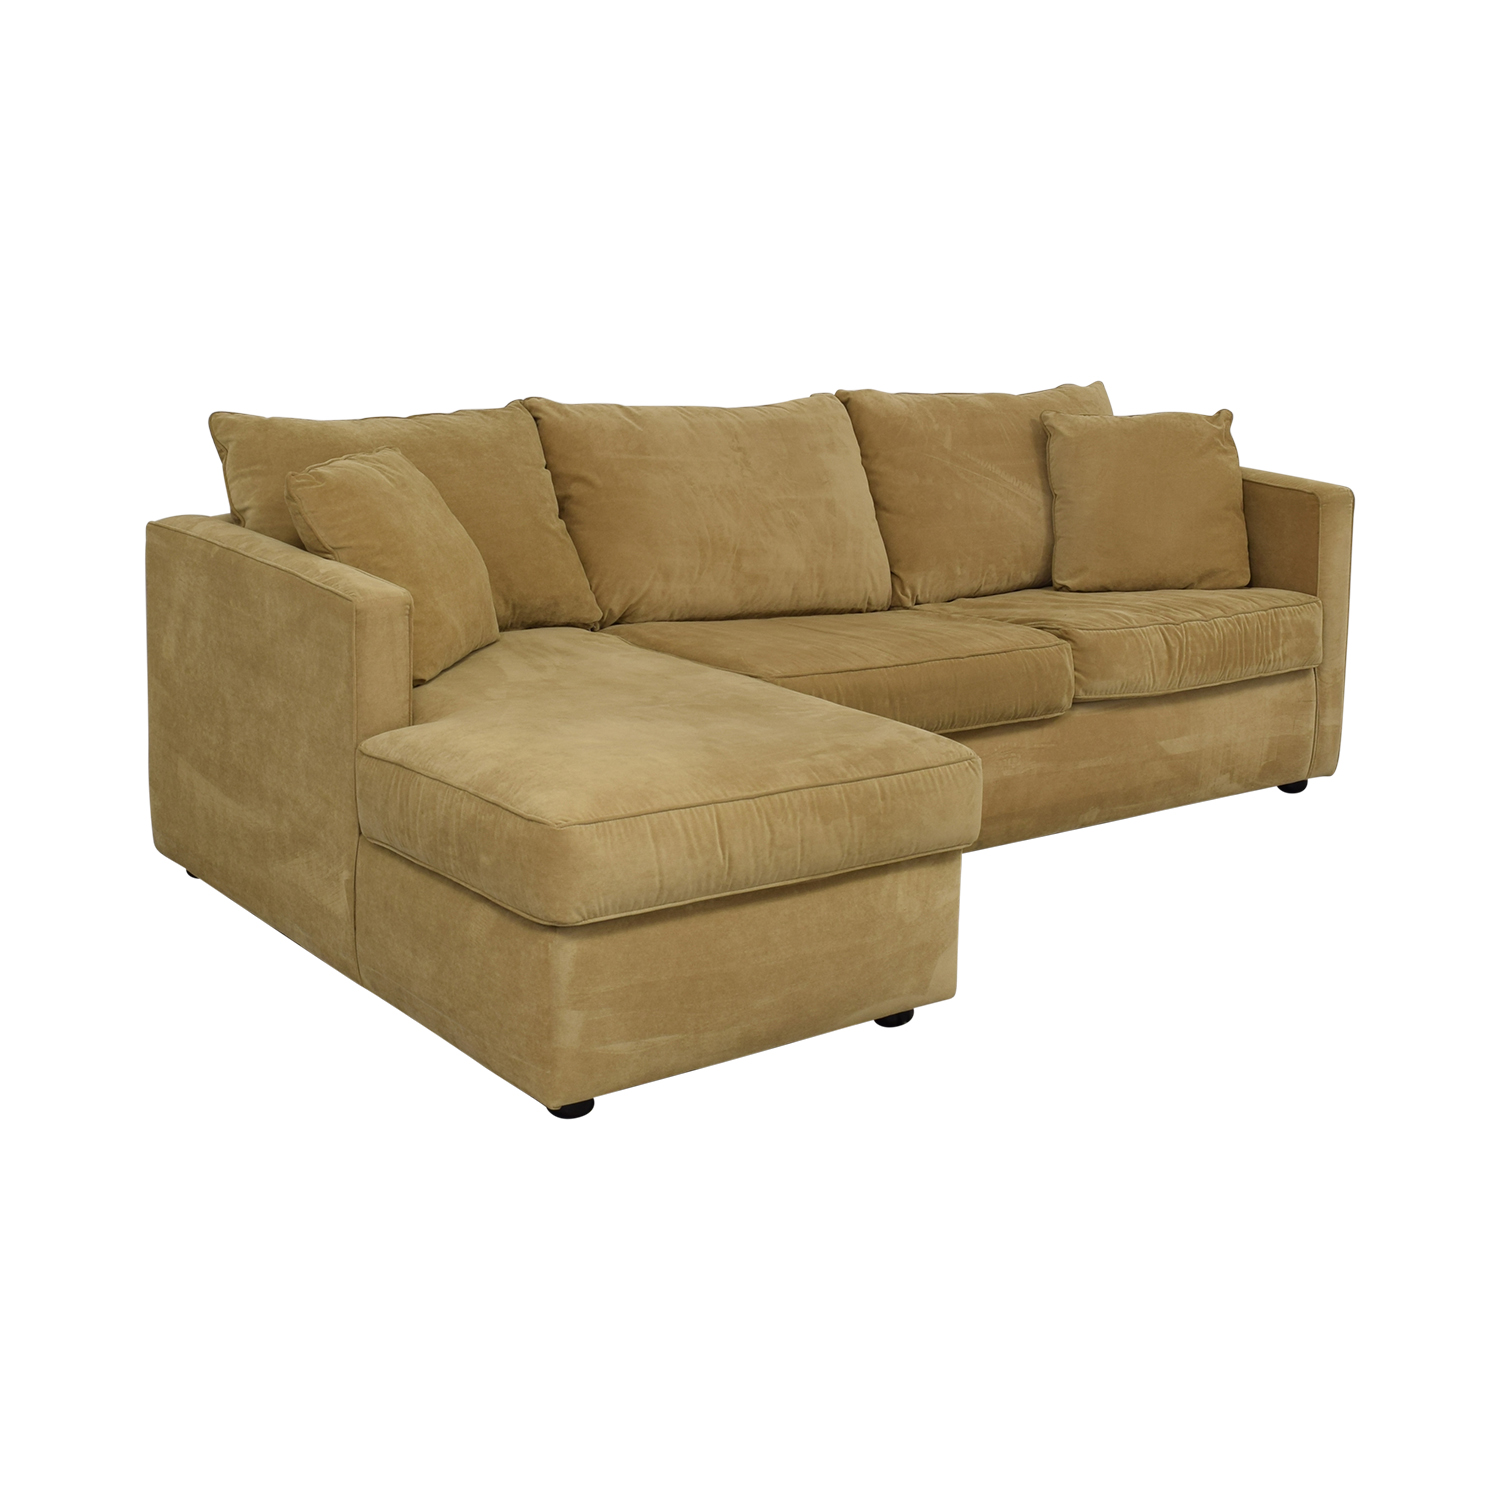 62% OFF - Klaussner Klaussner Chaise Sectional Sleeper Sofa / Sofas